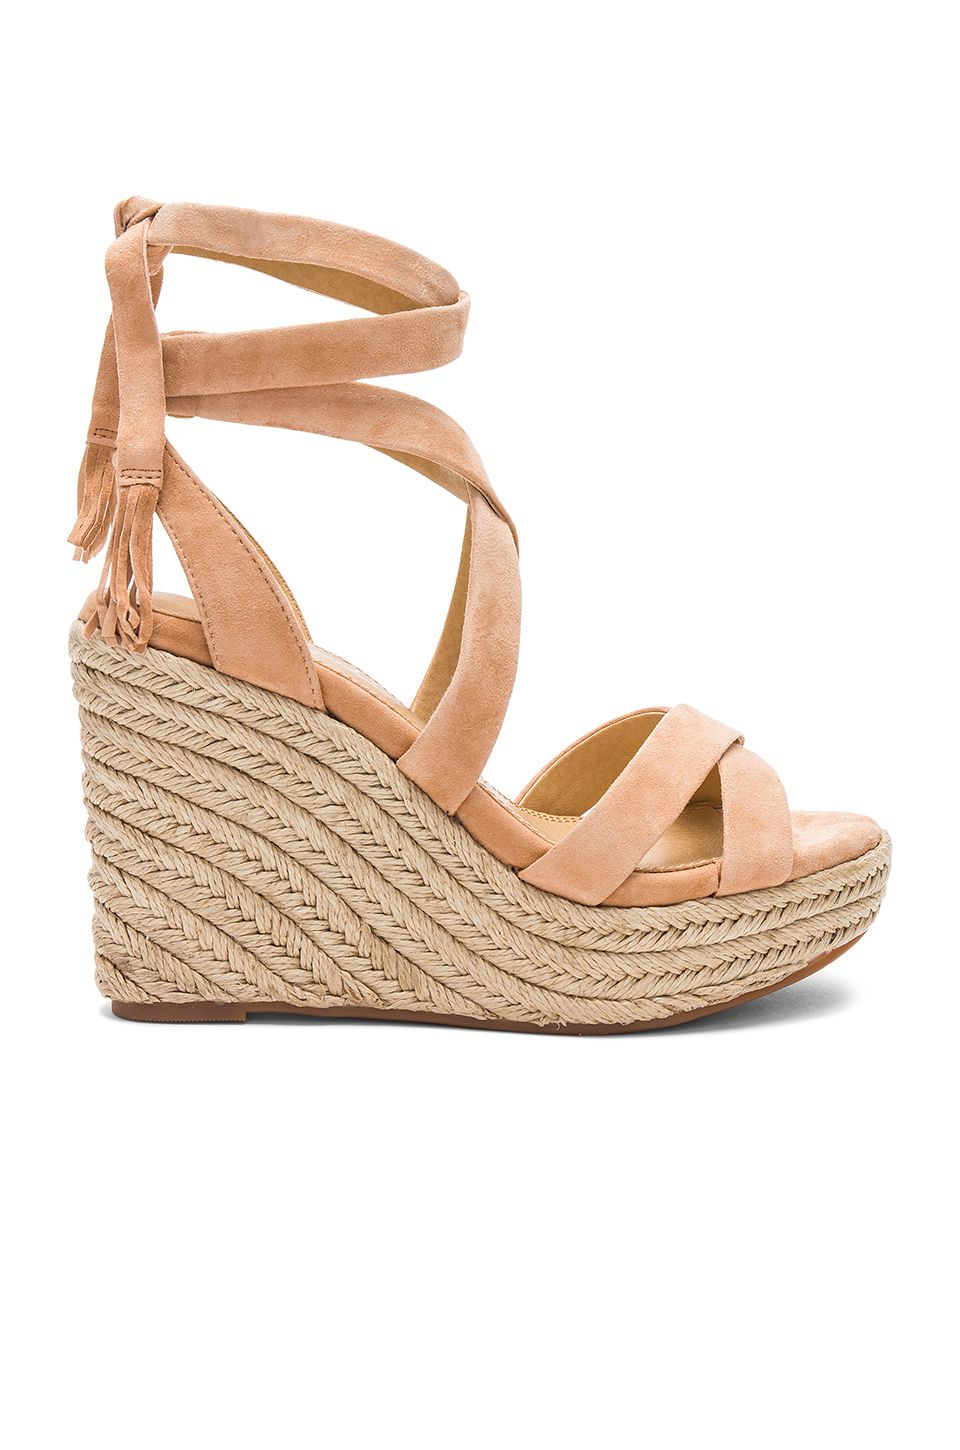 24728bb428a Splendid Janice Wedge in Nude | SS17 in 2019 | Espadrilles, Shoes ...